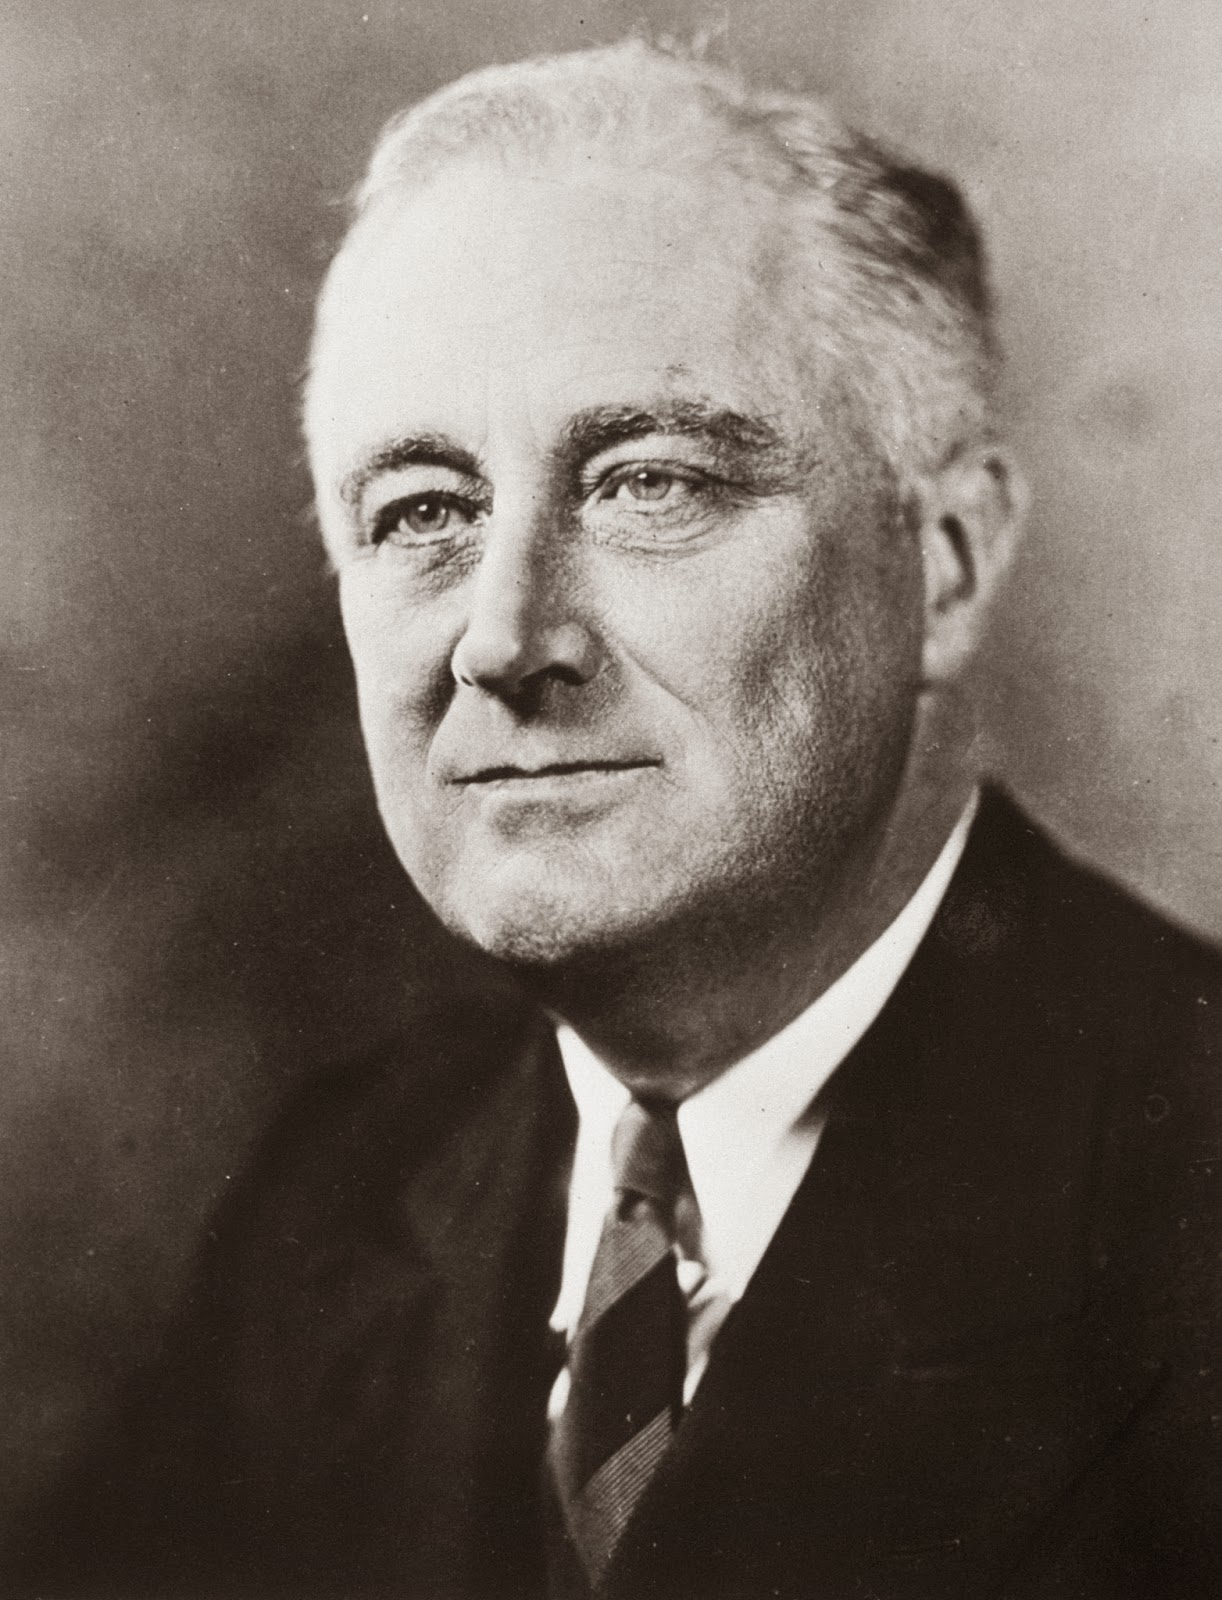 passage the forgotten man speech assessment items goalbook the forgotten man speech by president franklin d roosevelt